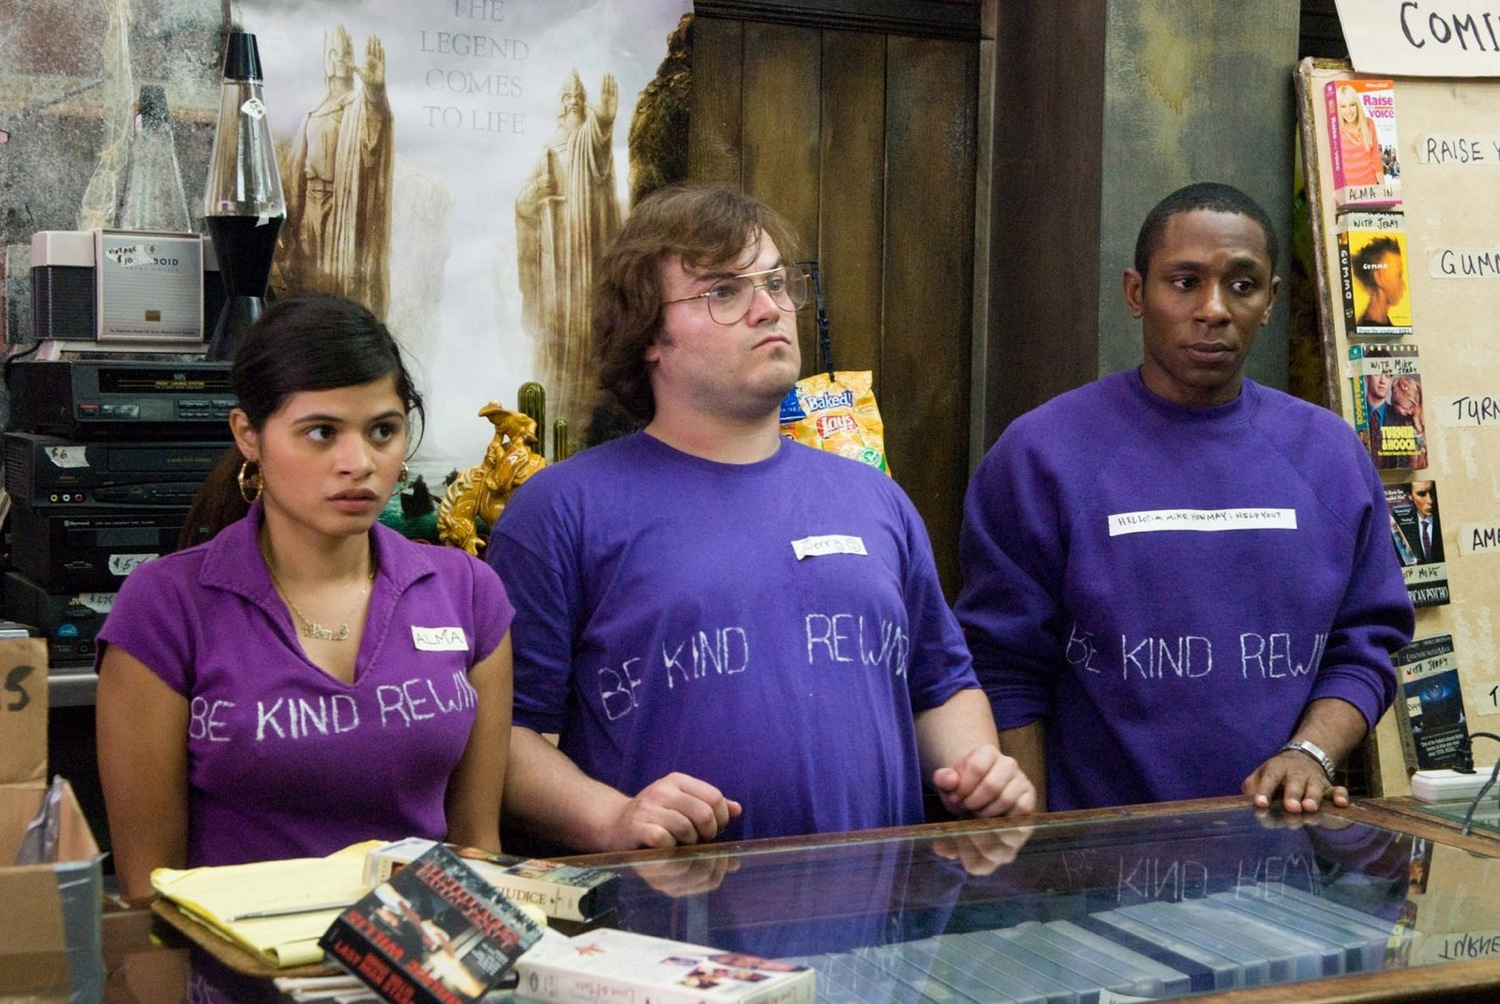 Videostore employees - (l to r) Melonie Diaz, Jack Black and Mos Def in Be Kind Rewind (2008)